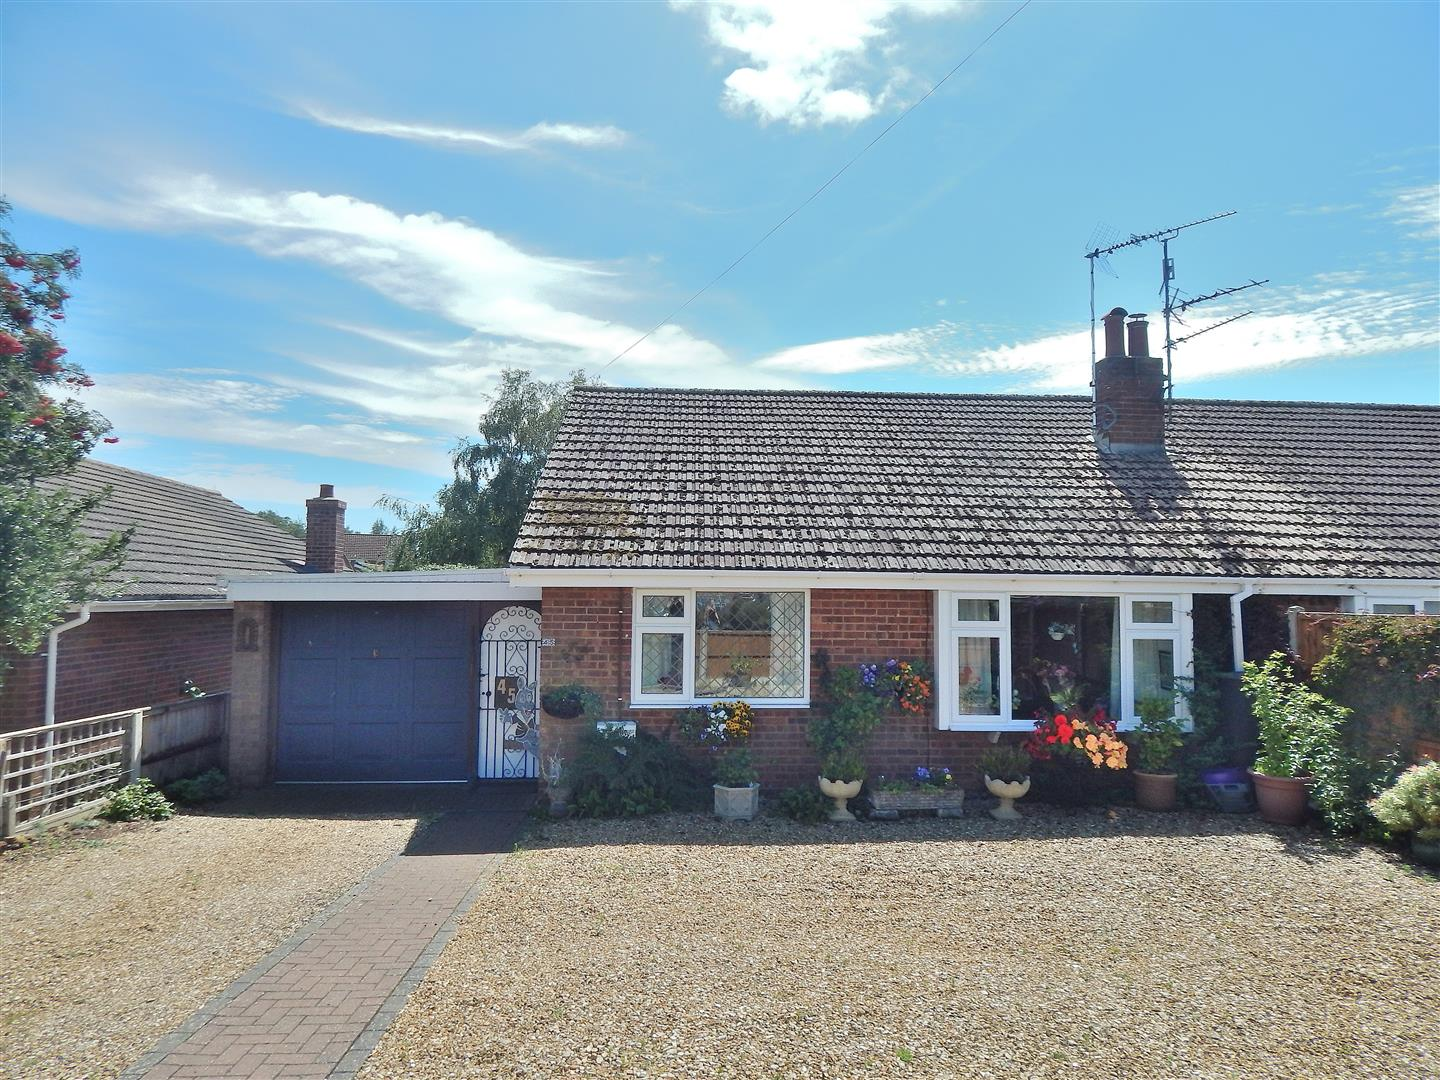 2 bed semi-detached bungalow for sale in King's Lynn, PE31 6PR  - Property Image 1